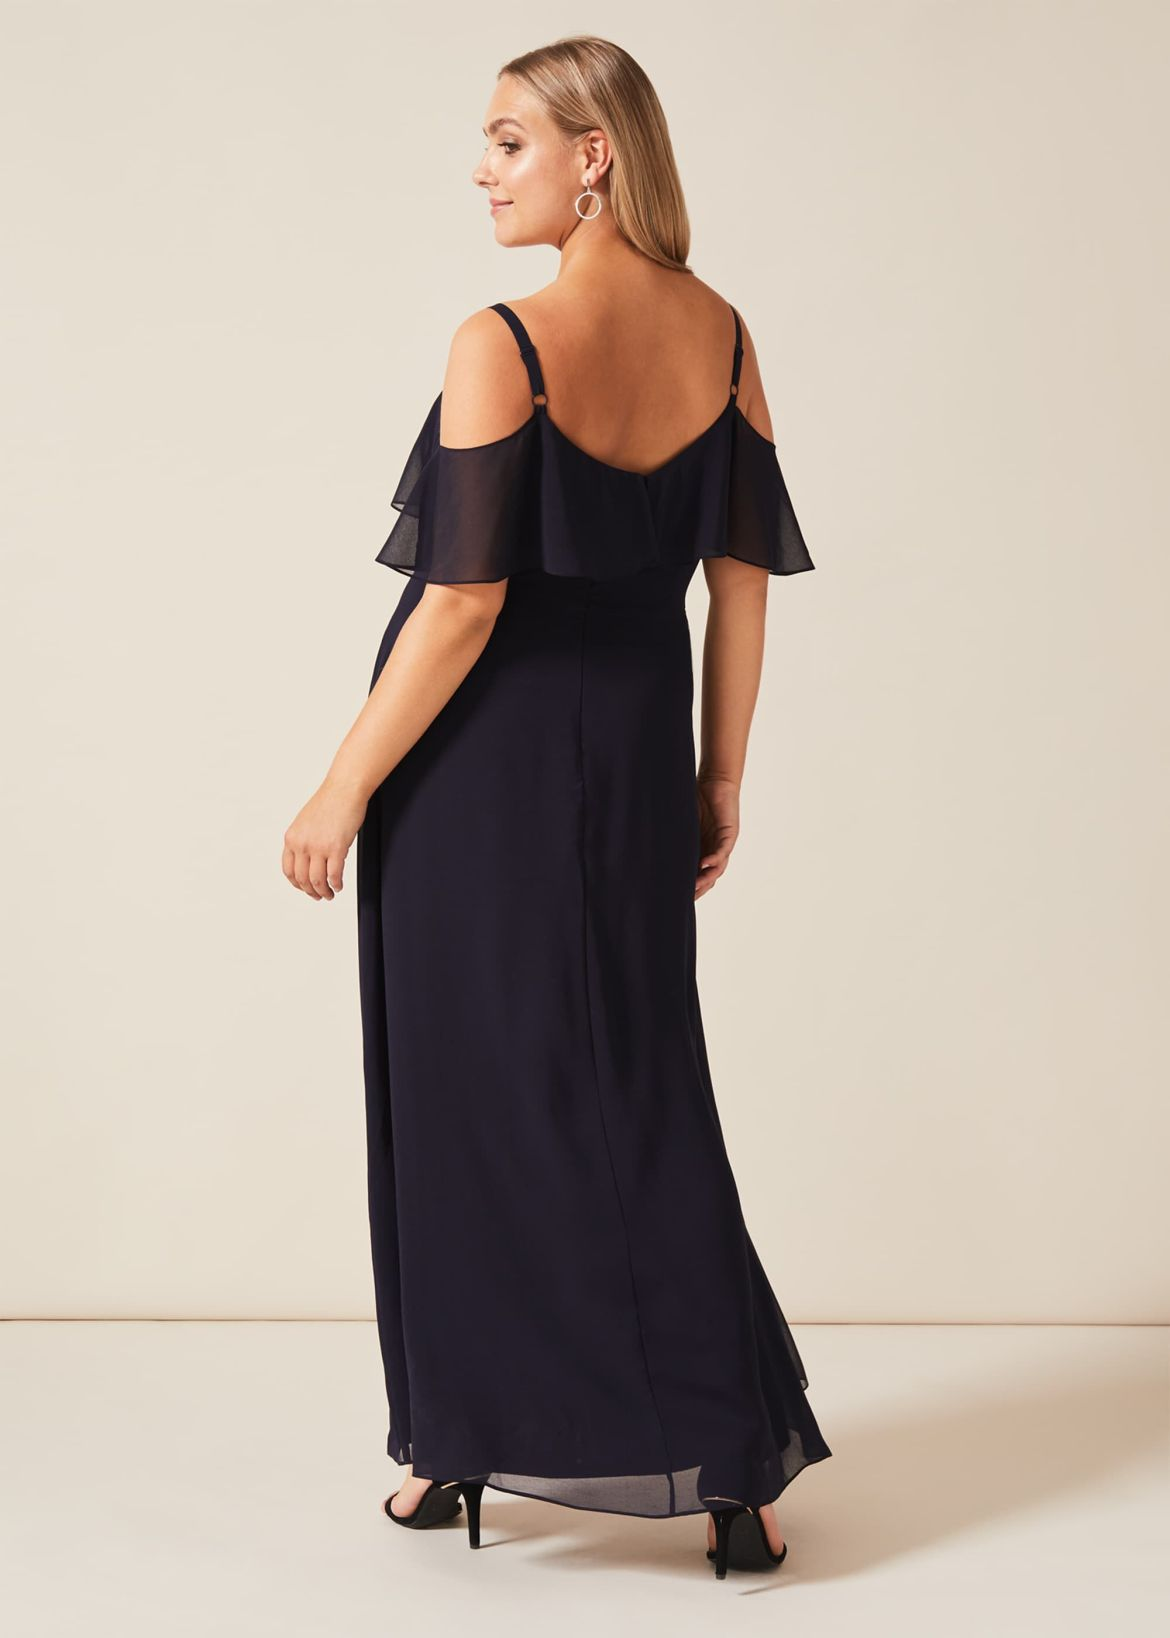 Wynter Maxi Dress